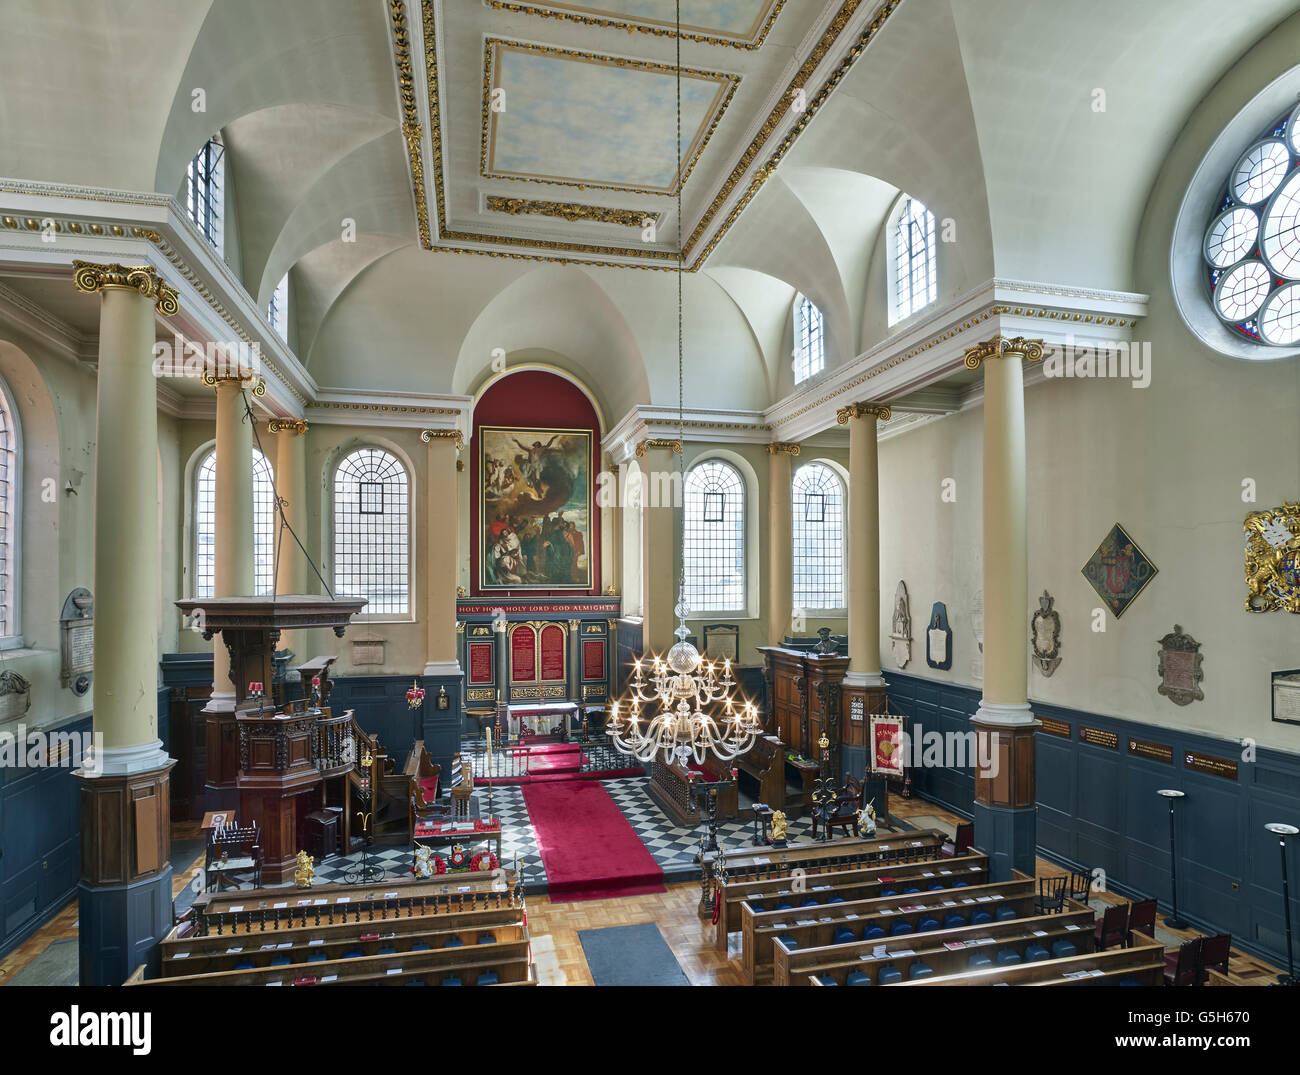 St James Garlickhythe, church in the City of London. The nave - Stock Image